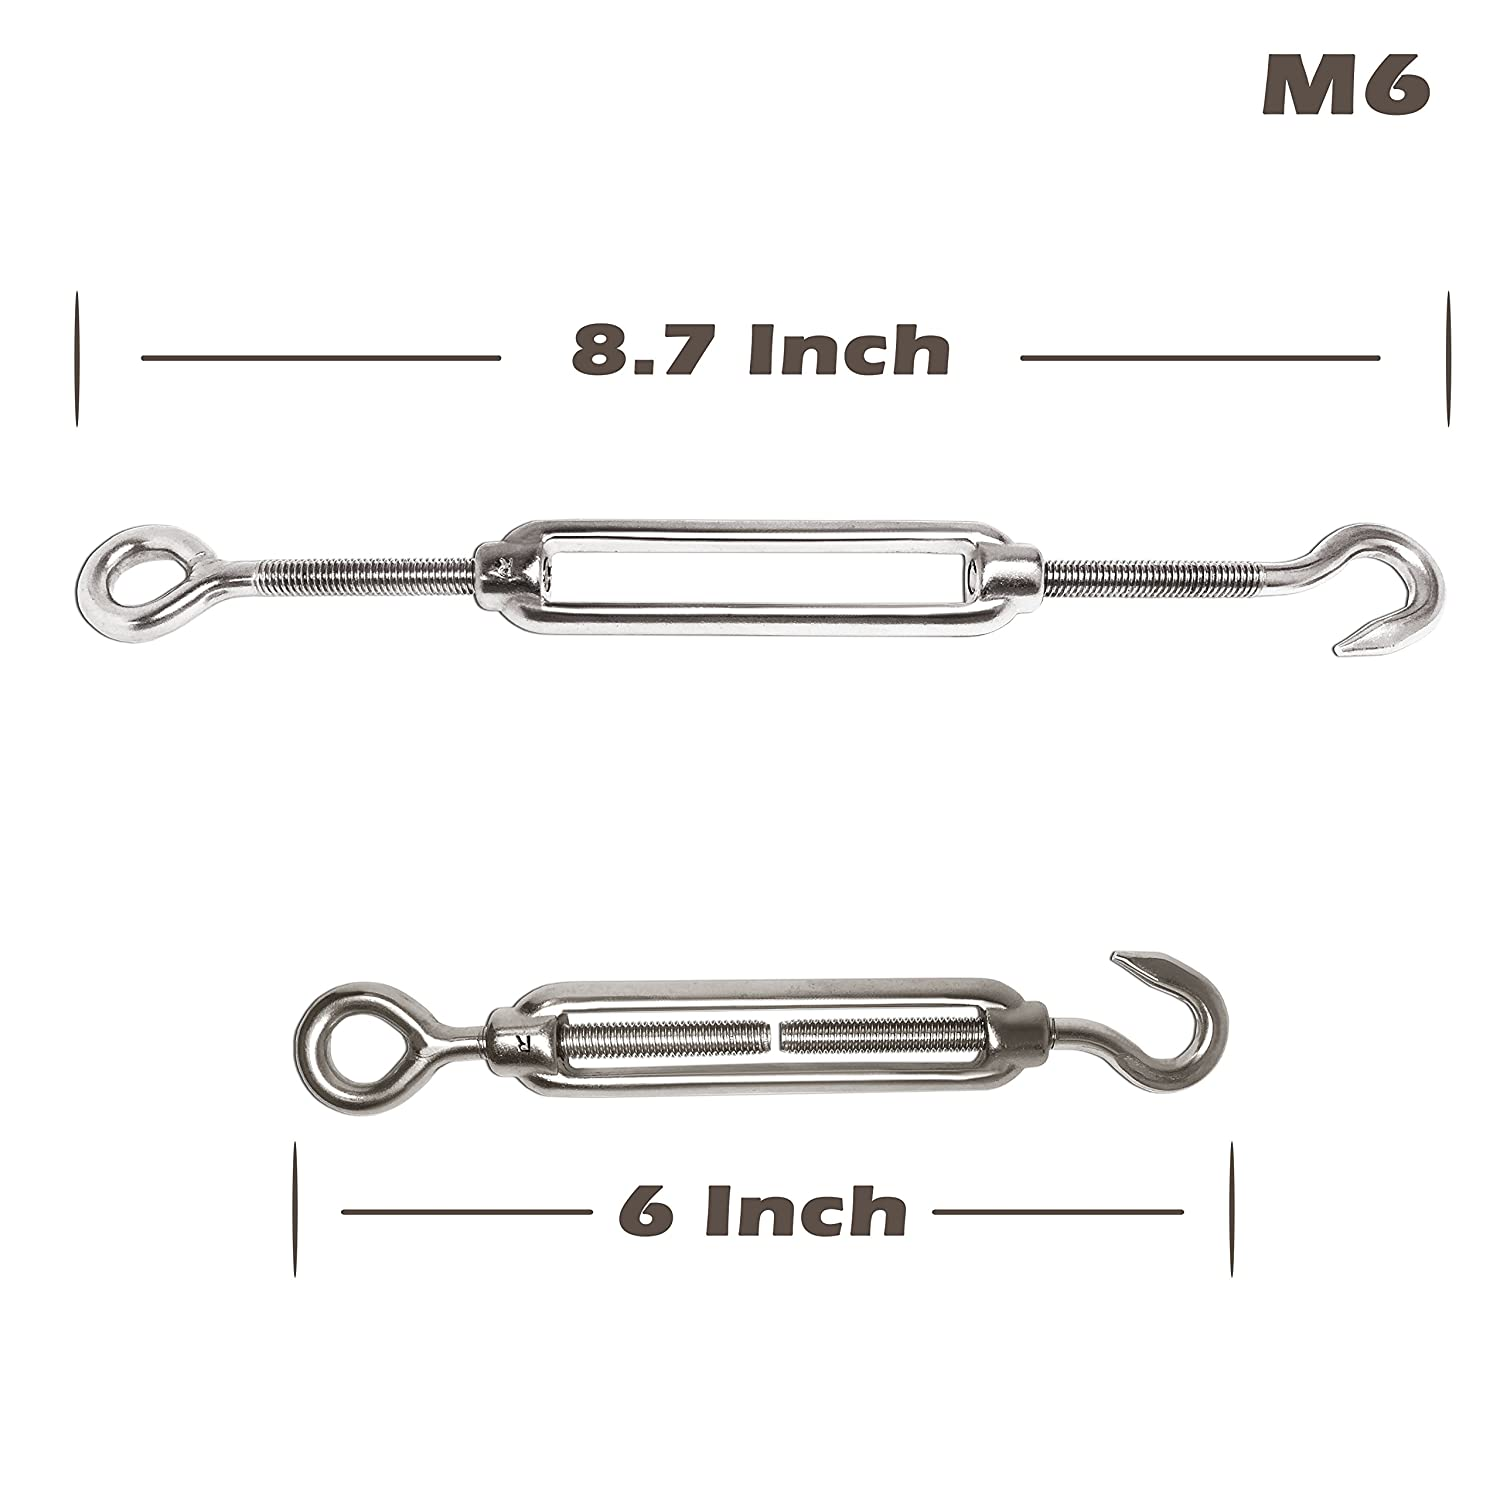 304 Stainless Steel Hardware Kit Min Living 20 Pcs M3 Wire Rope Clamp//Clip and 10 Pcs M3 Thimble for 1//8 Inch Wire Rope Cable Hook/&Eye Heavy Duty Cable Railing Kit 5 Pcs M6 Turnbuckle Tension